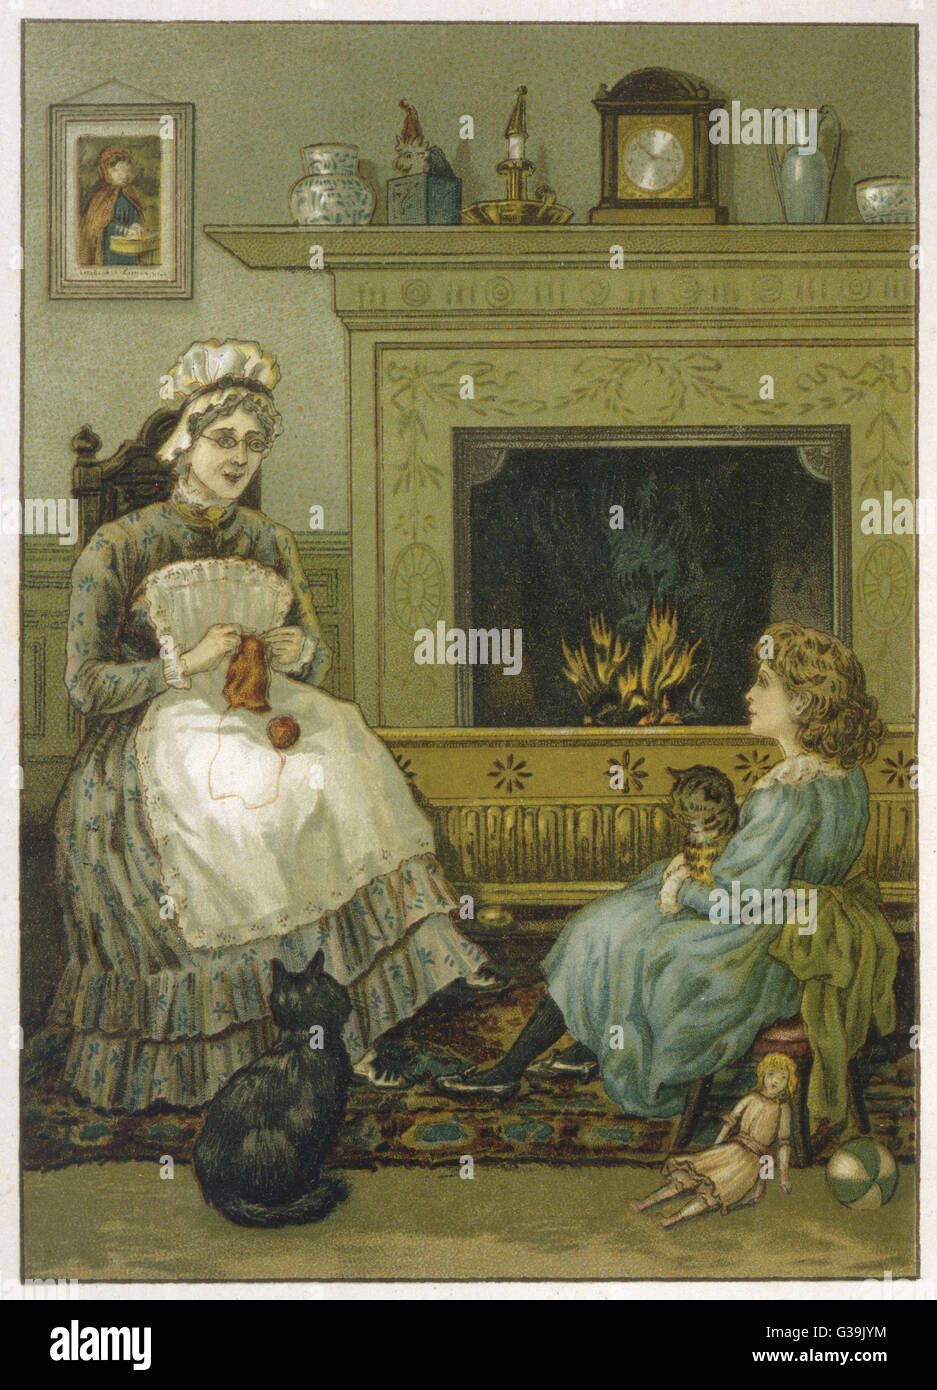 A child with a cat in her arms  has laid aside her doll to  listen to her nurse who sits  sewing by the fire, watched - Stock Image